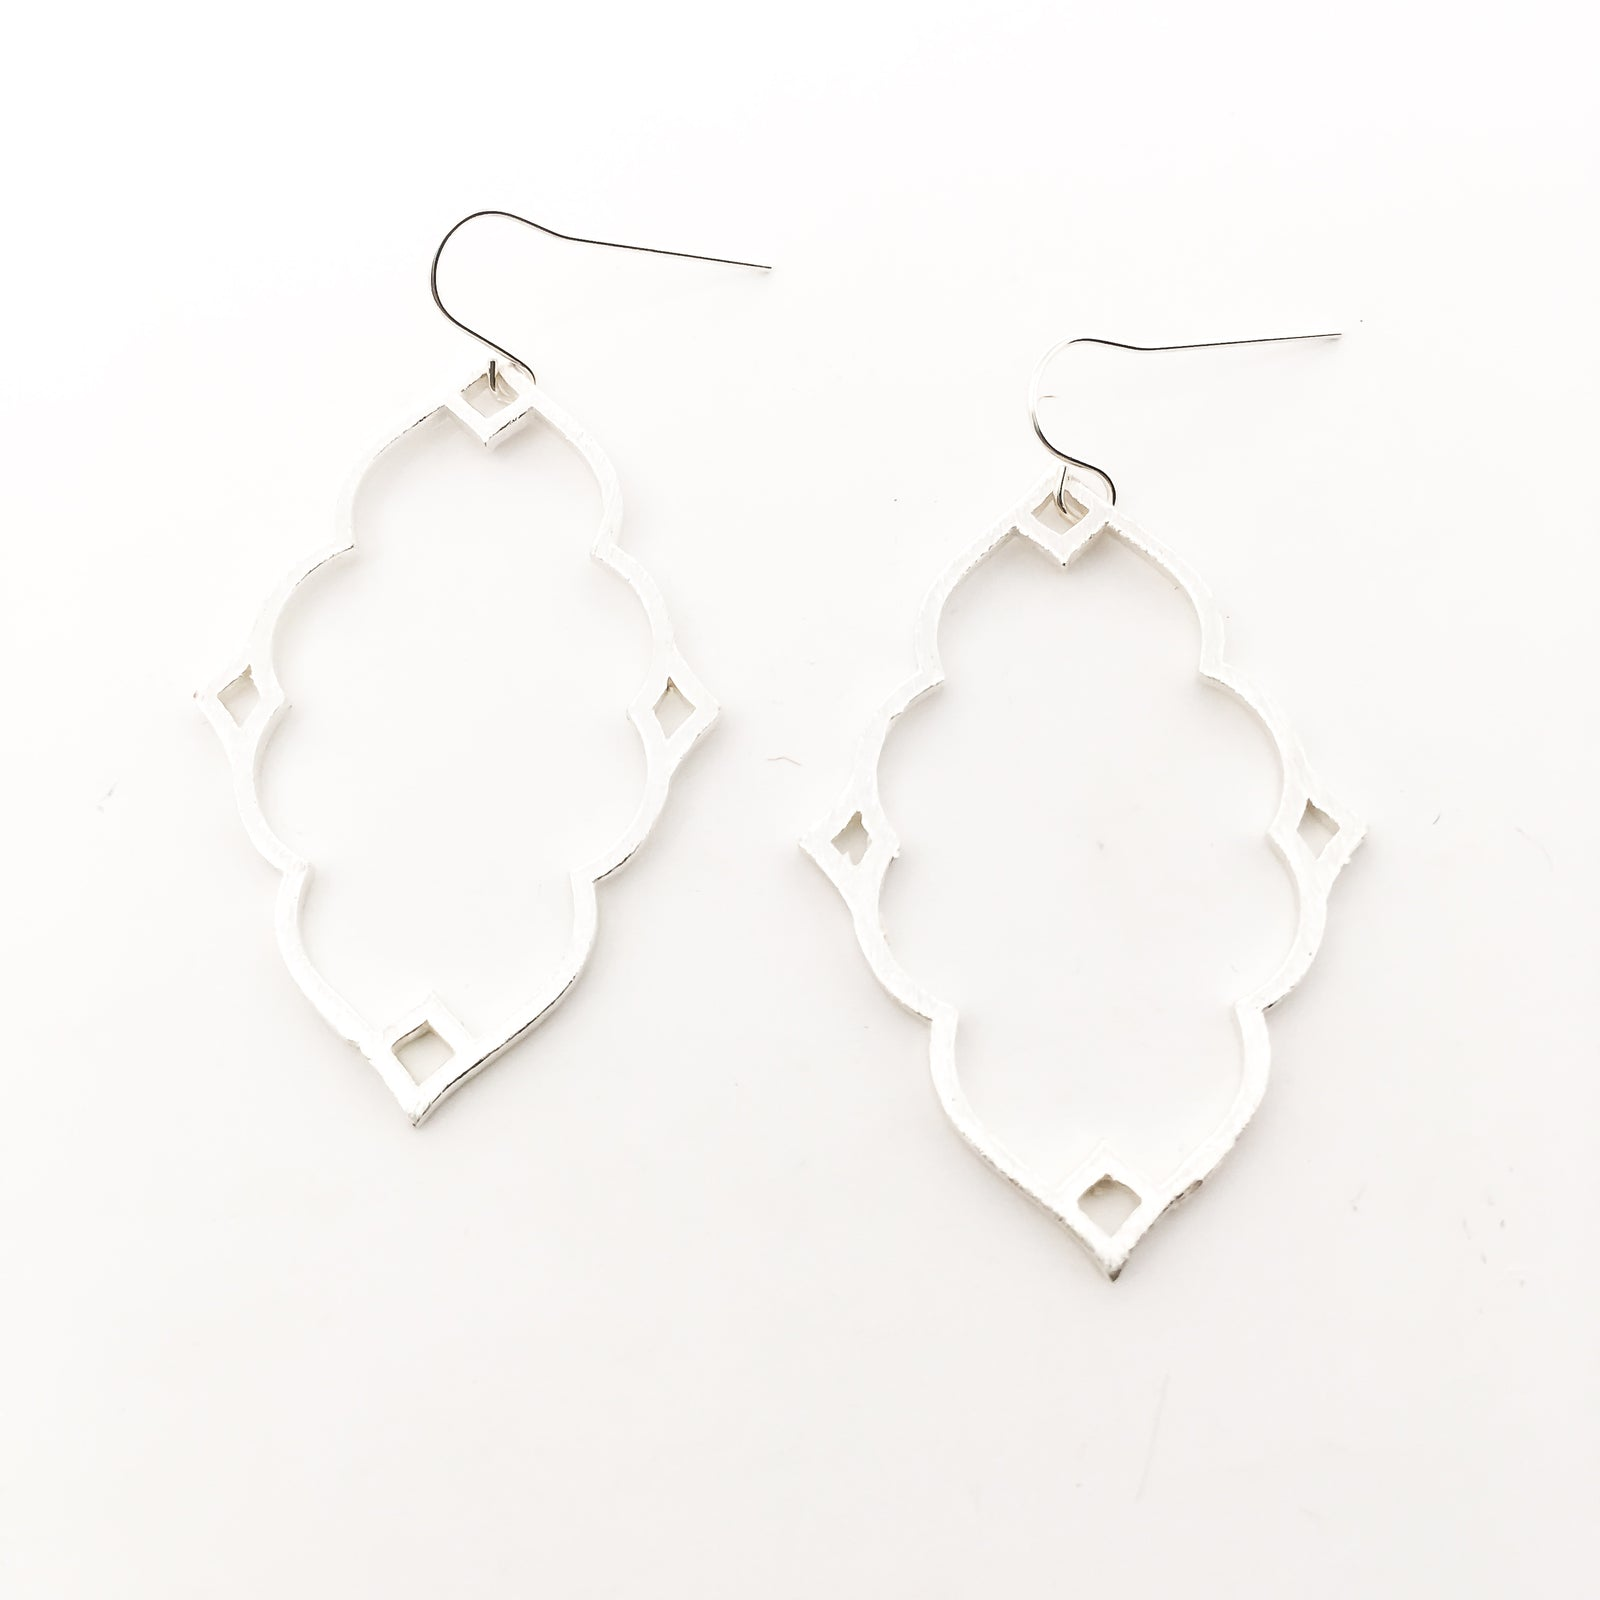 BRUSHED INDIAN EARRINGS | STERLING SILVER